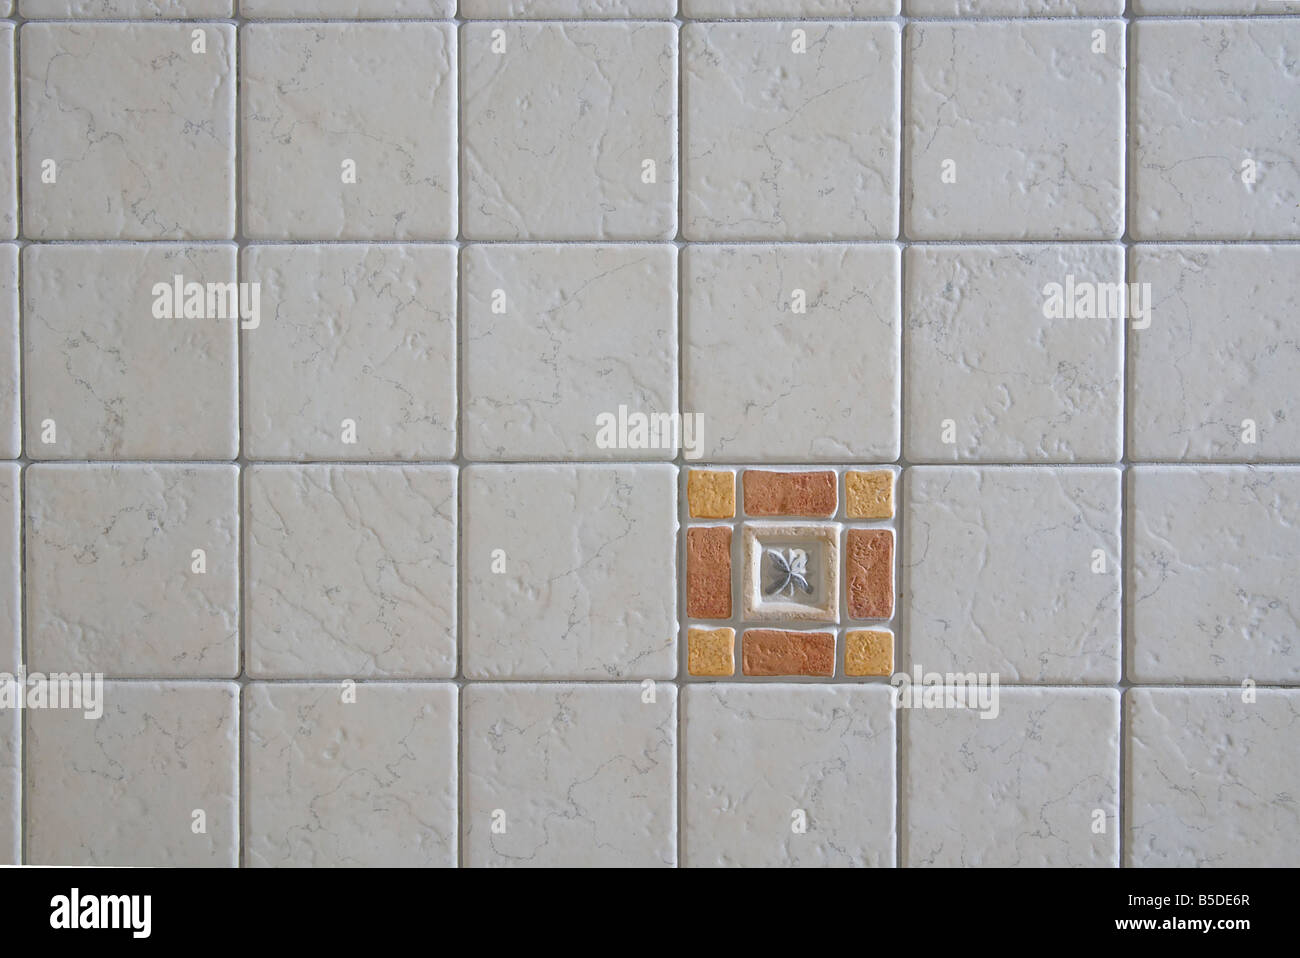 detail of tiles - Stock Image